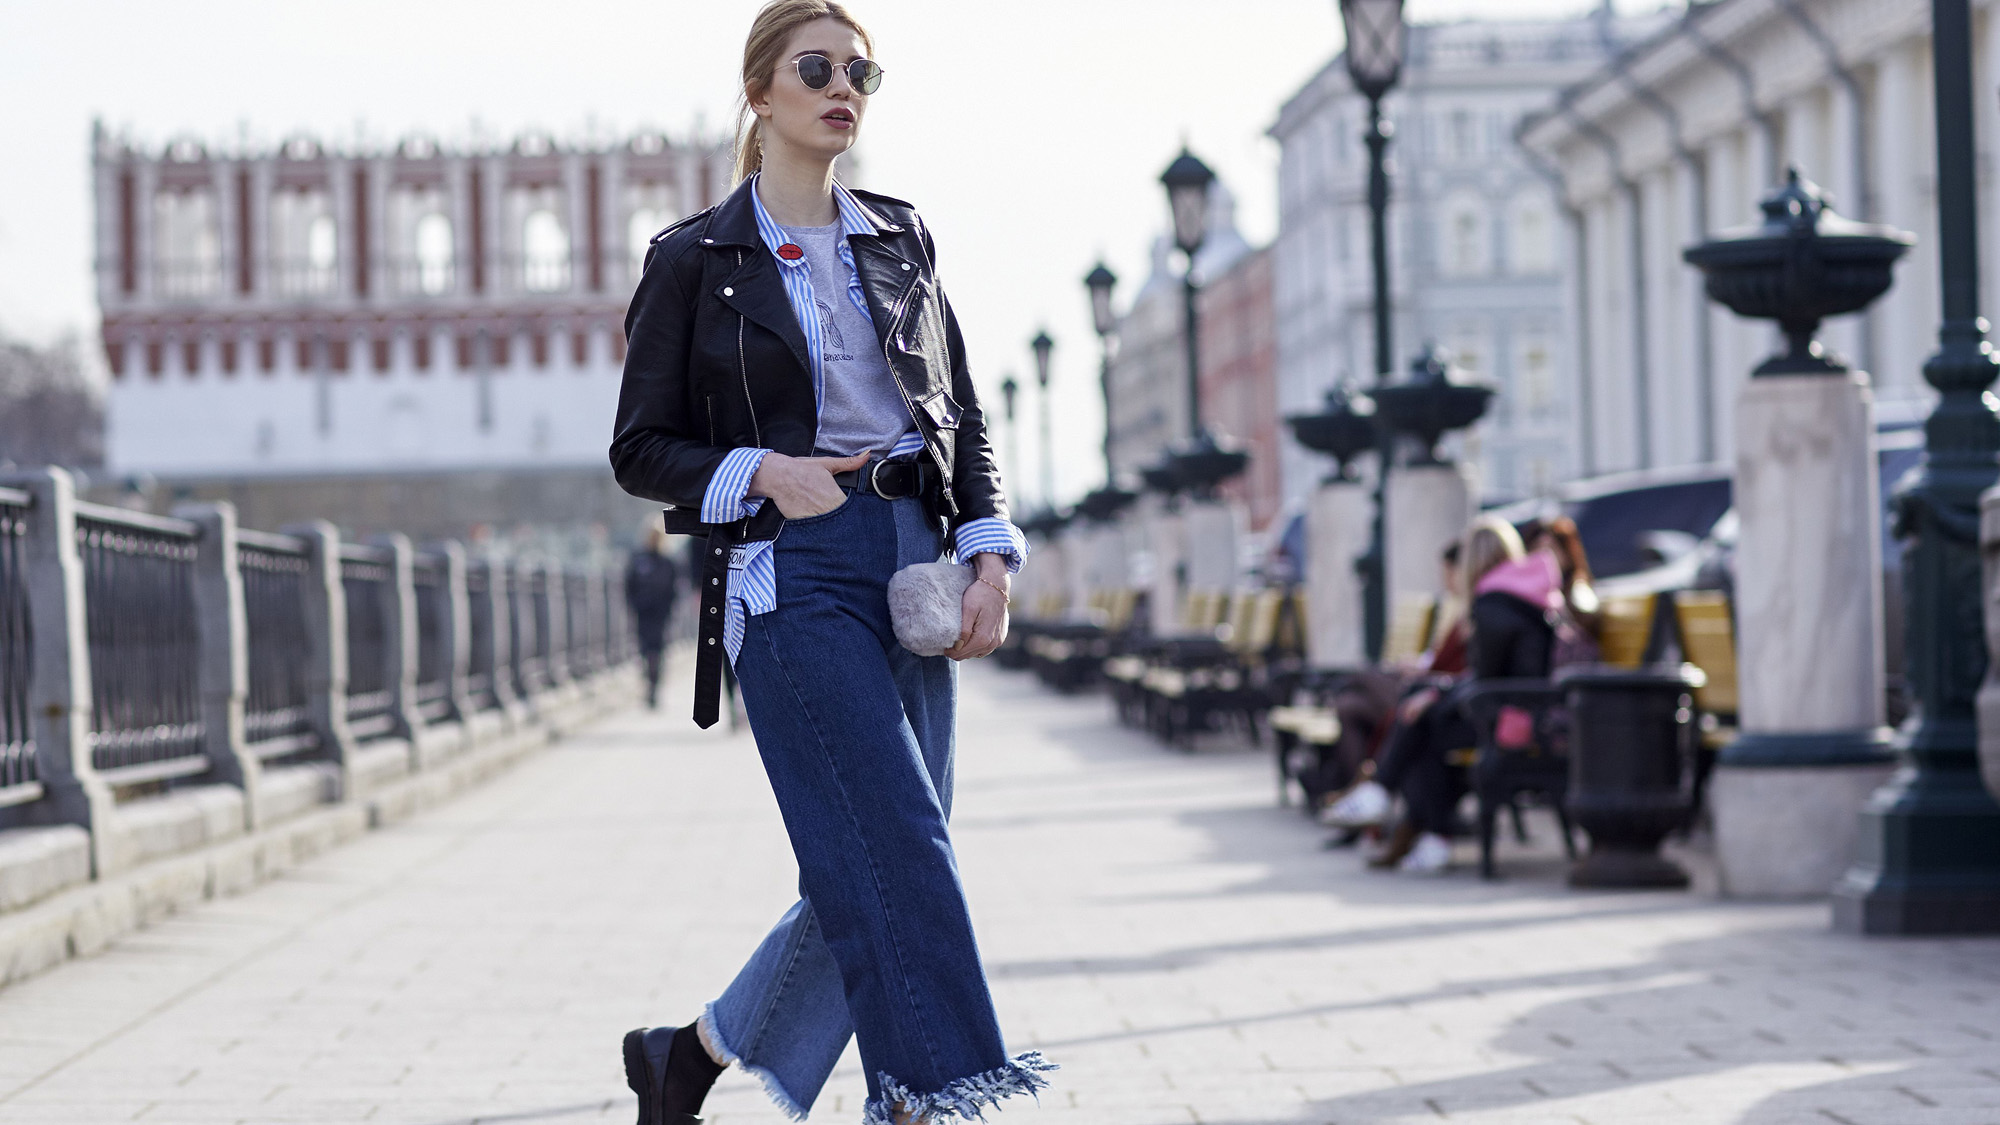 The coolest jackets on our wish list for spring